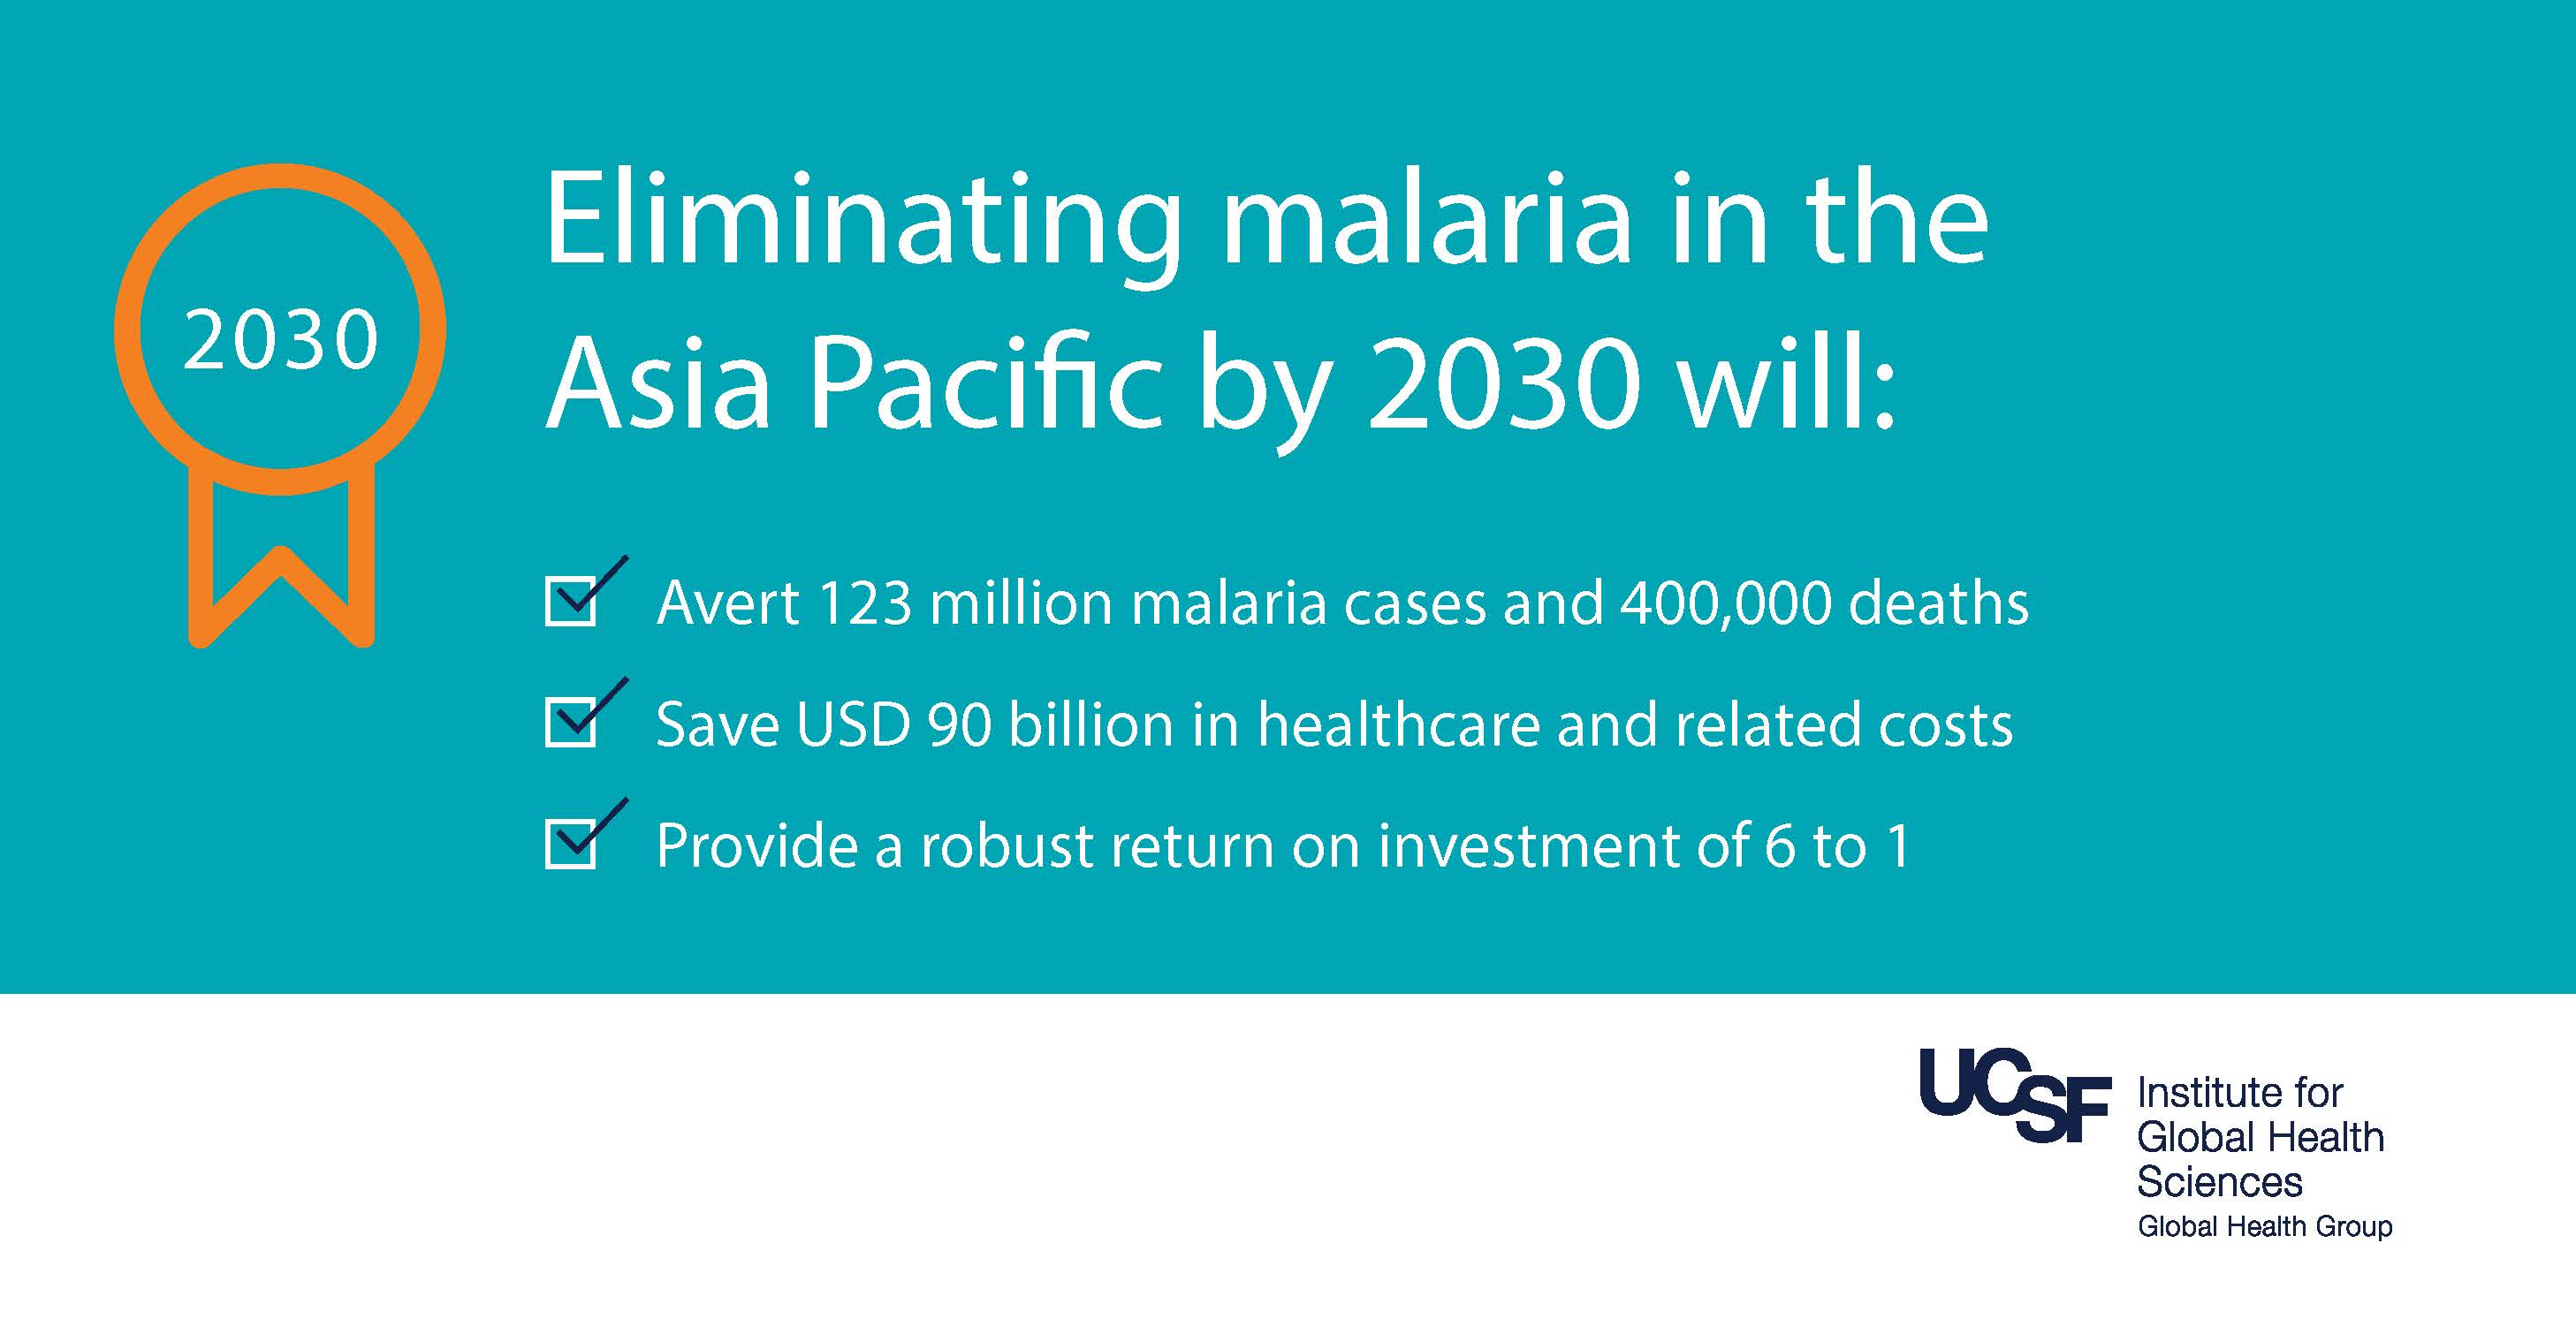 Infographic about eliminating malaria in Asia Pacific by 2030